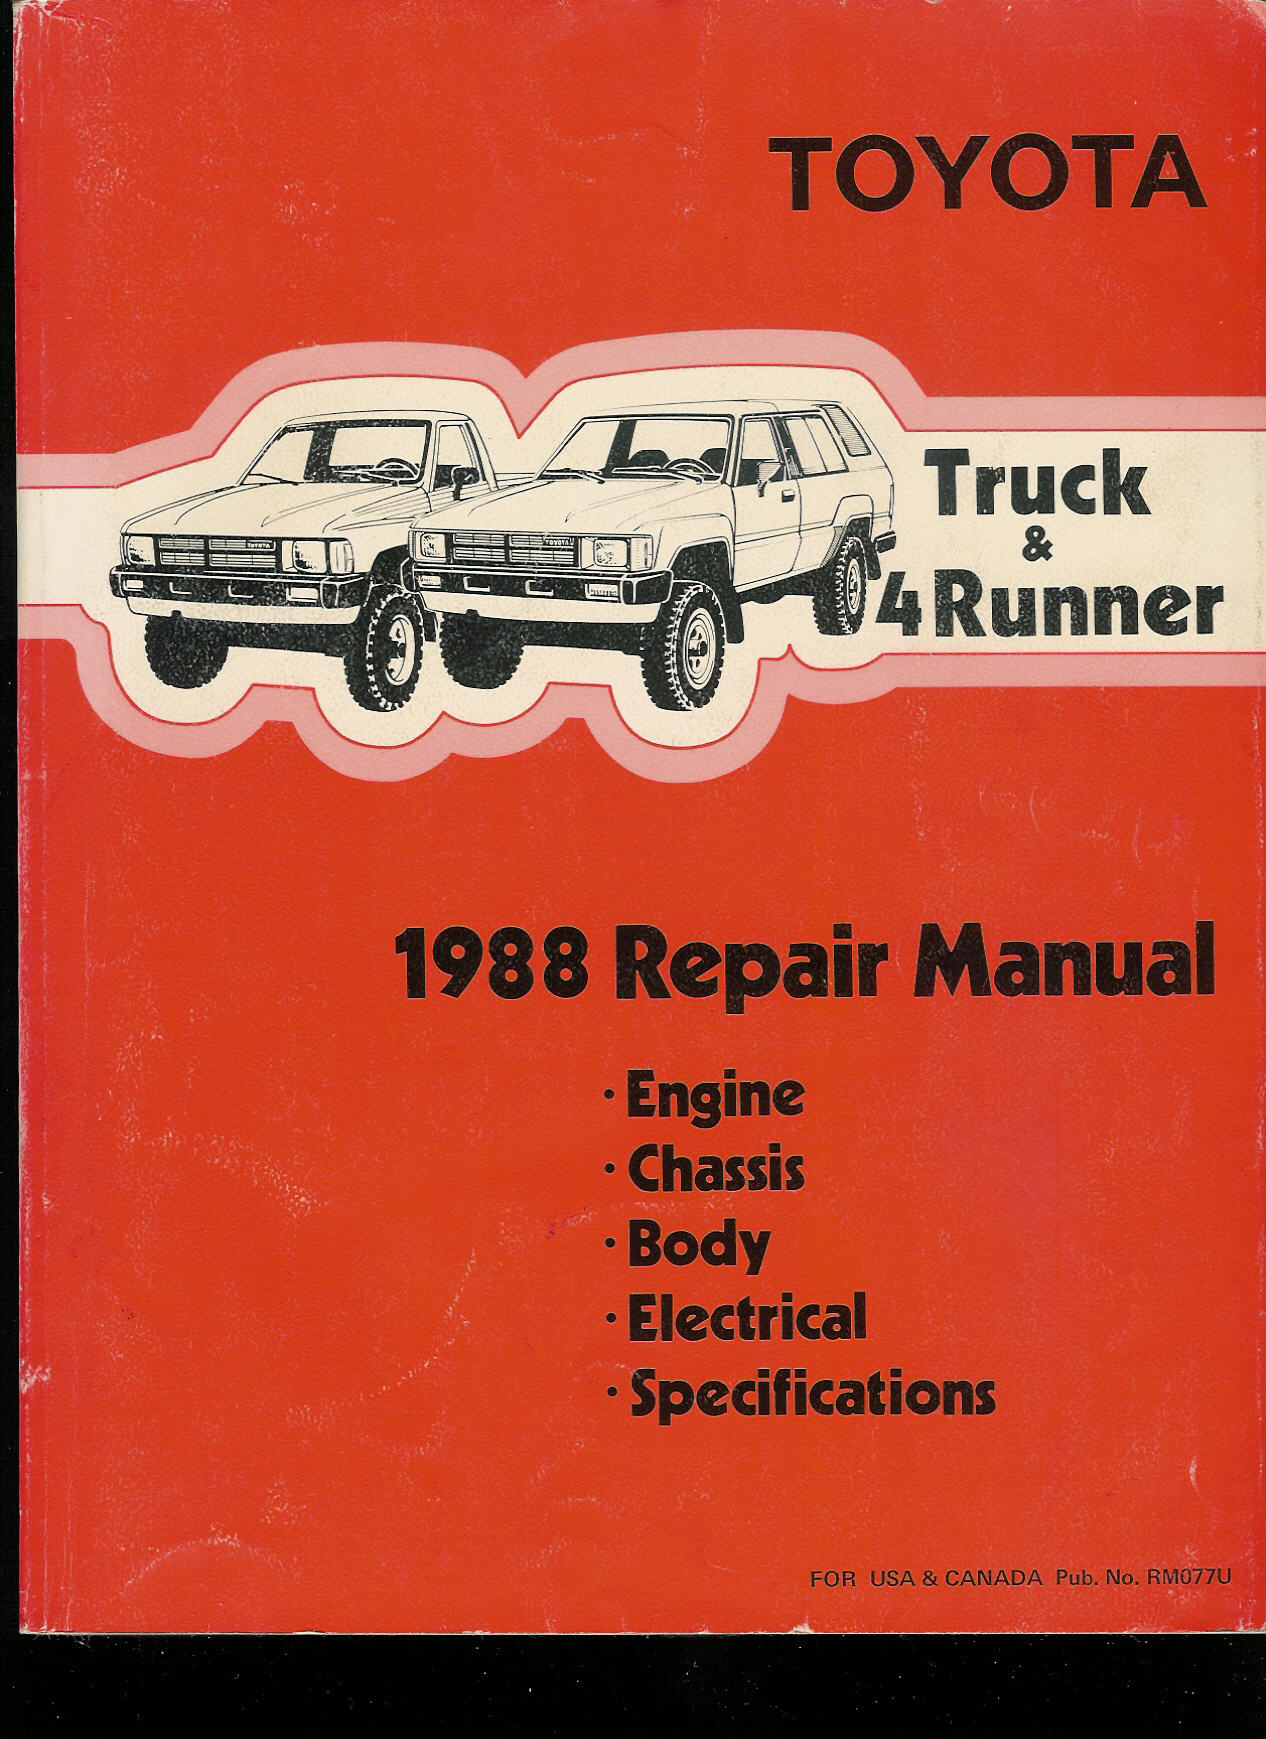 4run toyota trucks where can i get service manuals for my truck rh 4run sr5 com 1995 Toyota Tacoma 1999 Toyota Pickup